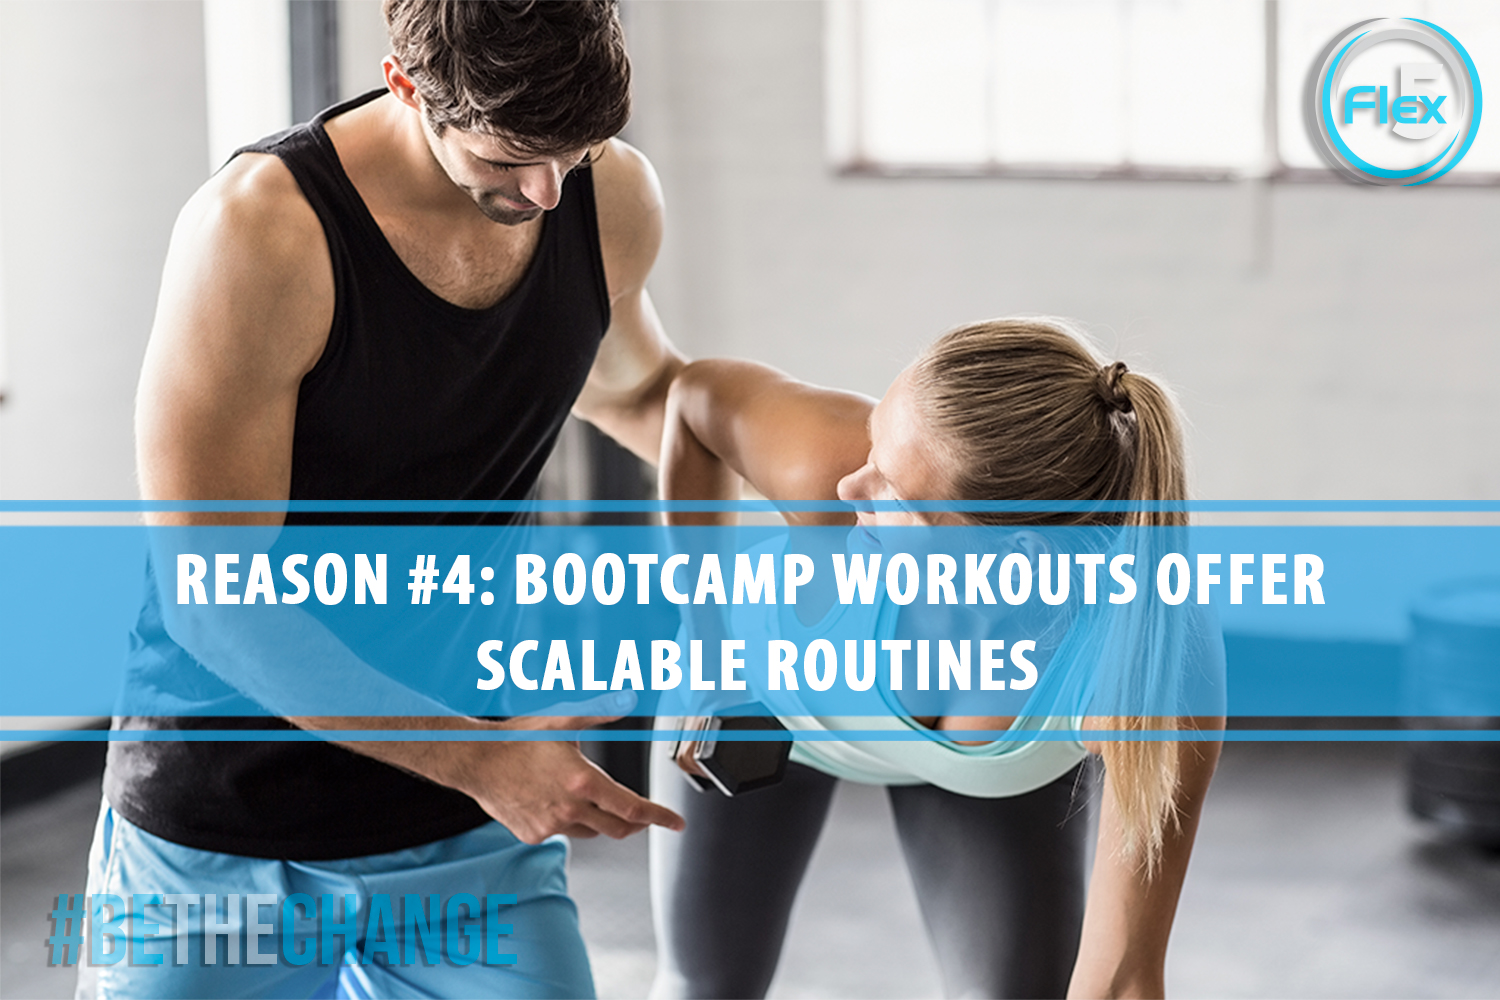 flex5-blog-5-reasons-to-add-bootcamp-workouts-to-your-fitness-schedule-scalable-workouts